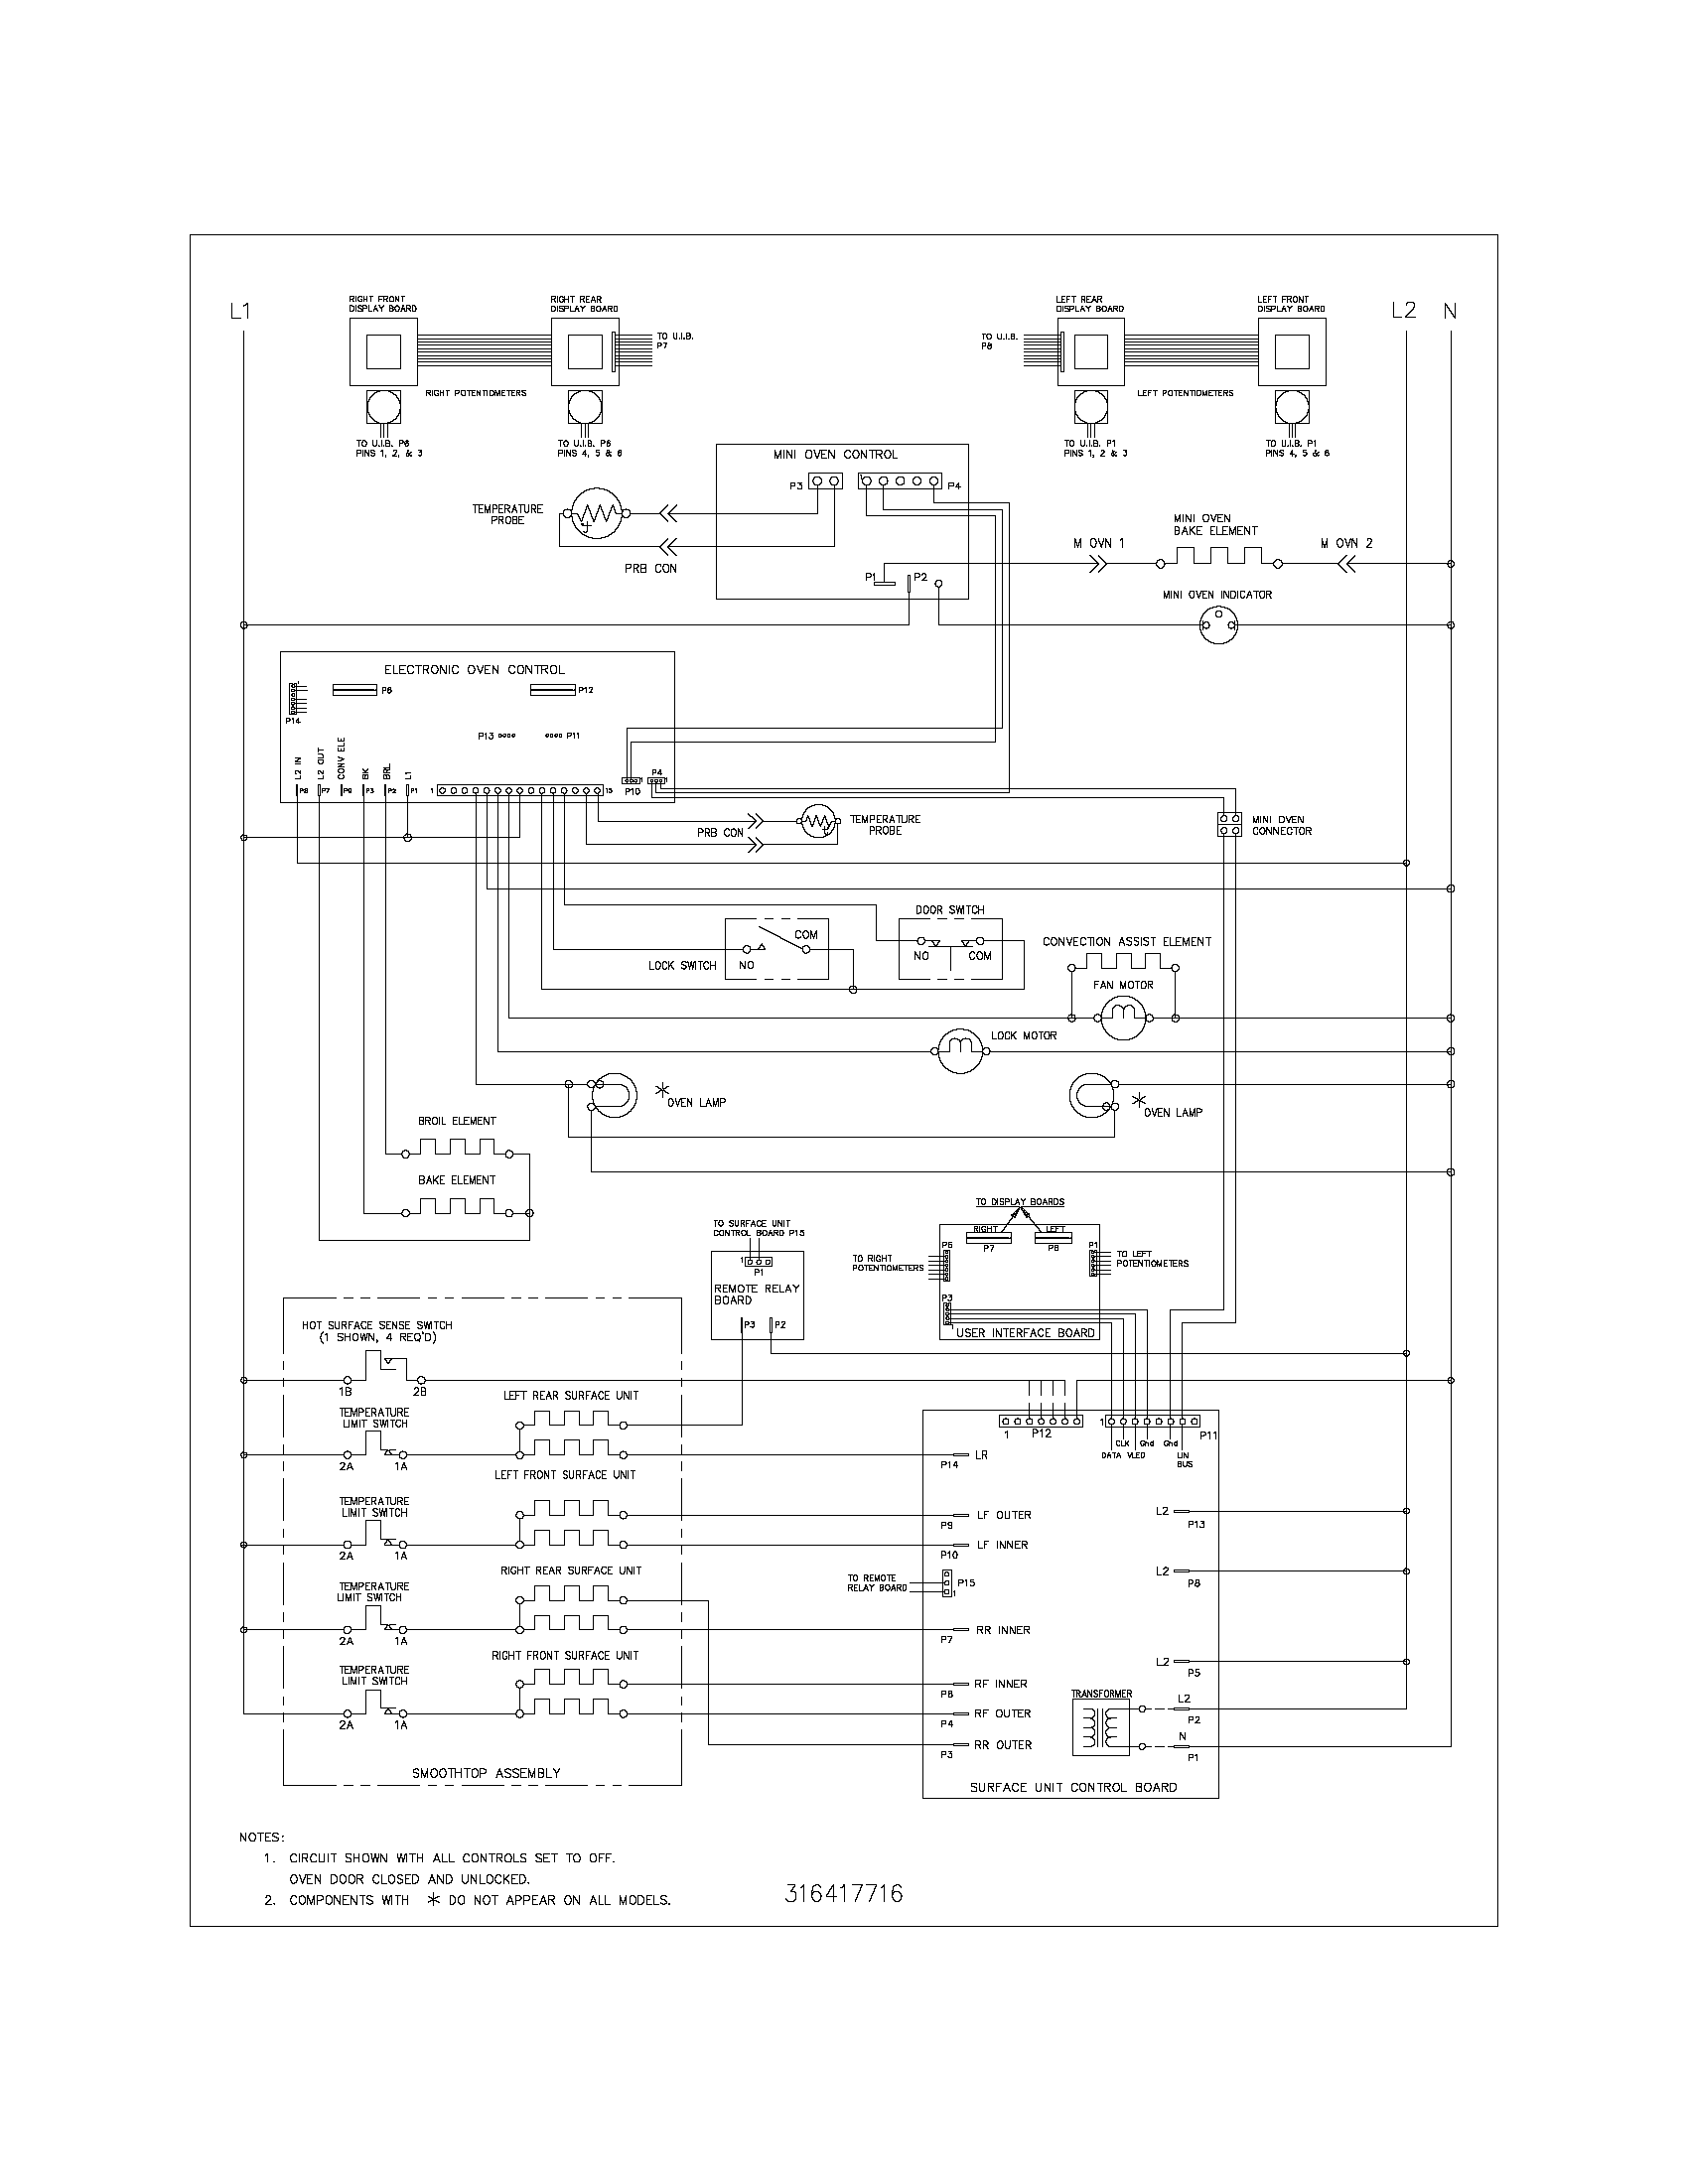 temco fireplace wiring diagram fireplace components fireplace blowers and fans diagrams wiring diagram for duraflame electric fire place [ 840 x 1087 Pixel ]